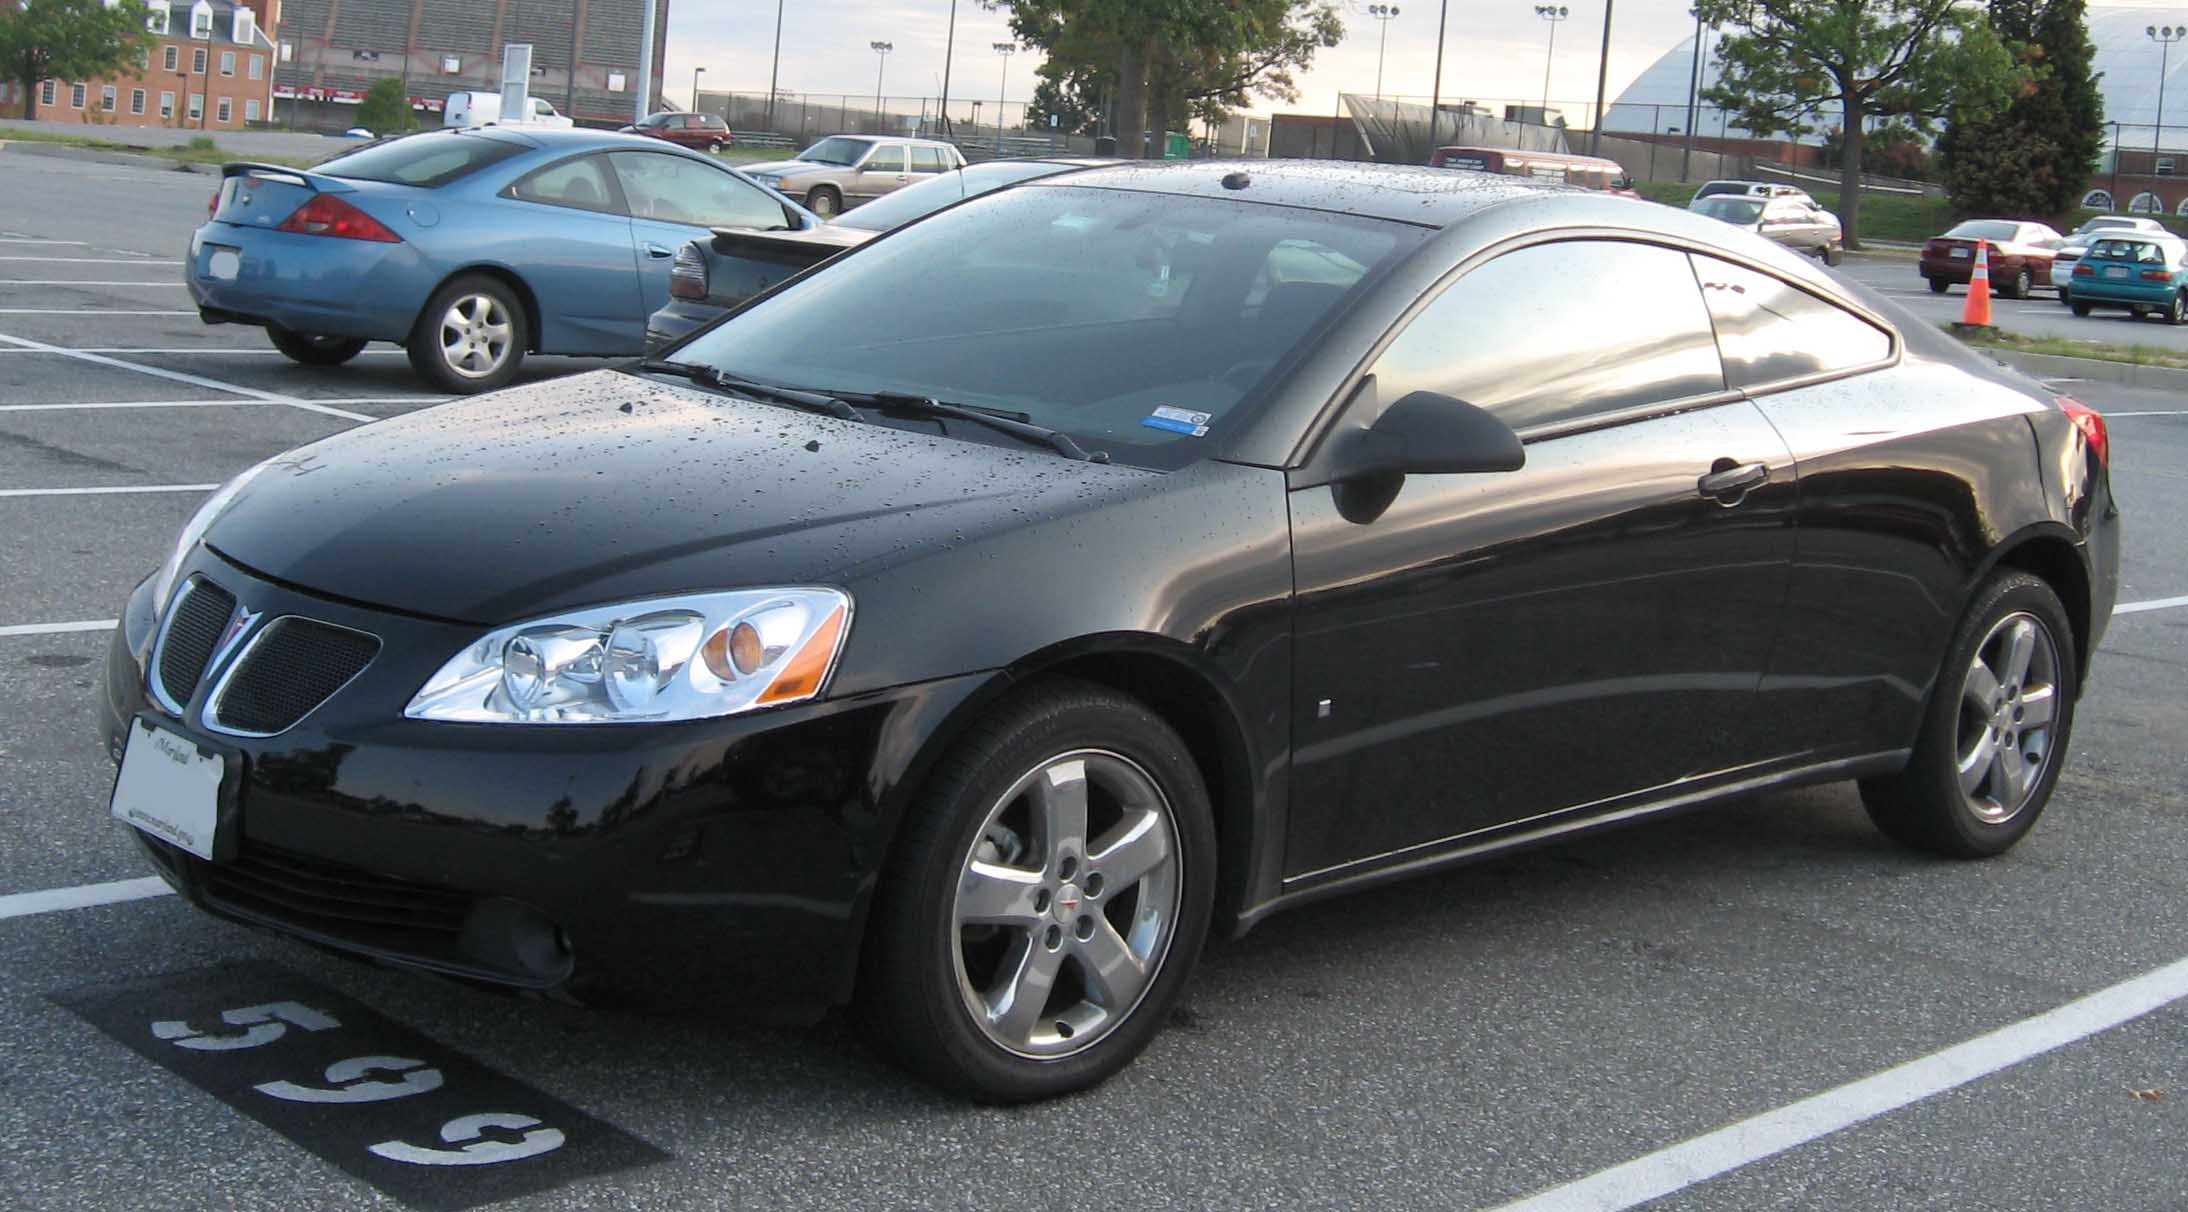 2006 pontiac g6 coupe pictures information and specs. Black Bedroom Furniture Sets. Home Design Ideas